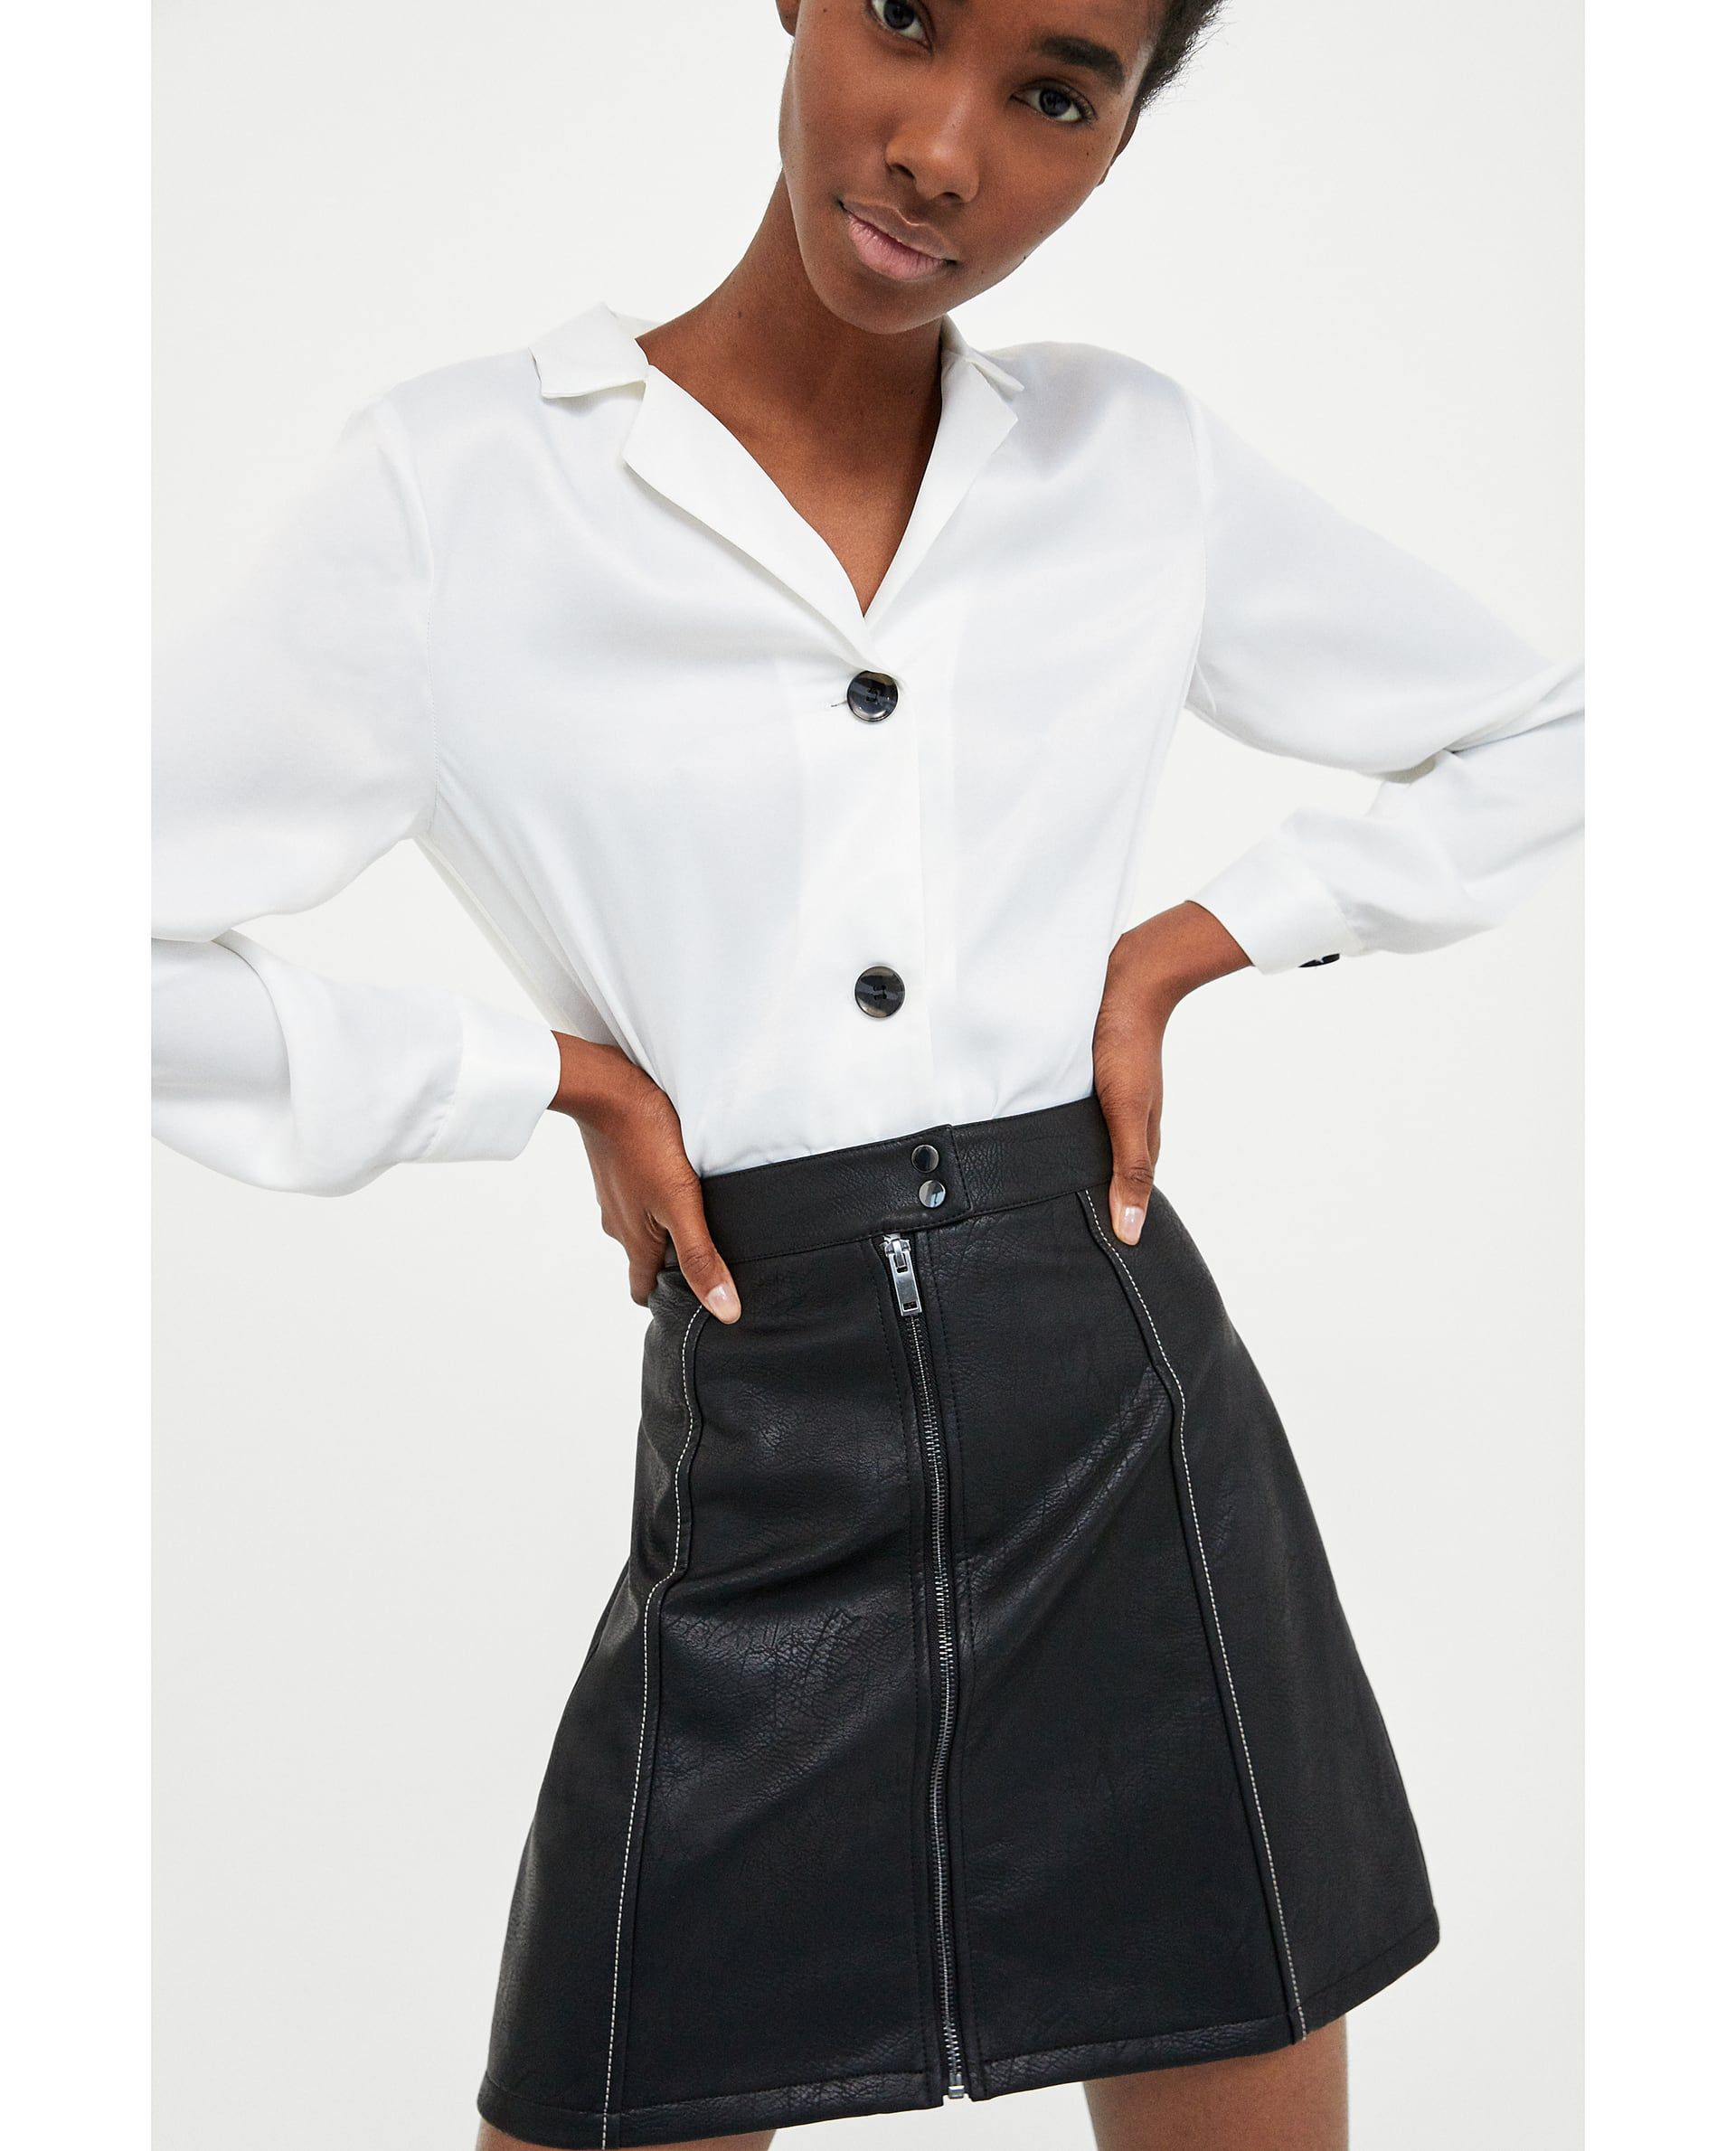 978226e719 Women's New In Clothes   New Collection Online   ZARA United Kingdom ...